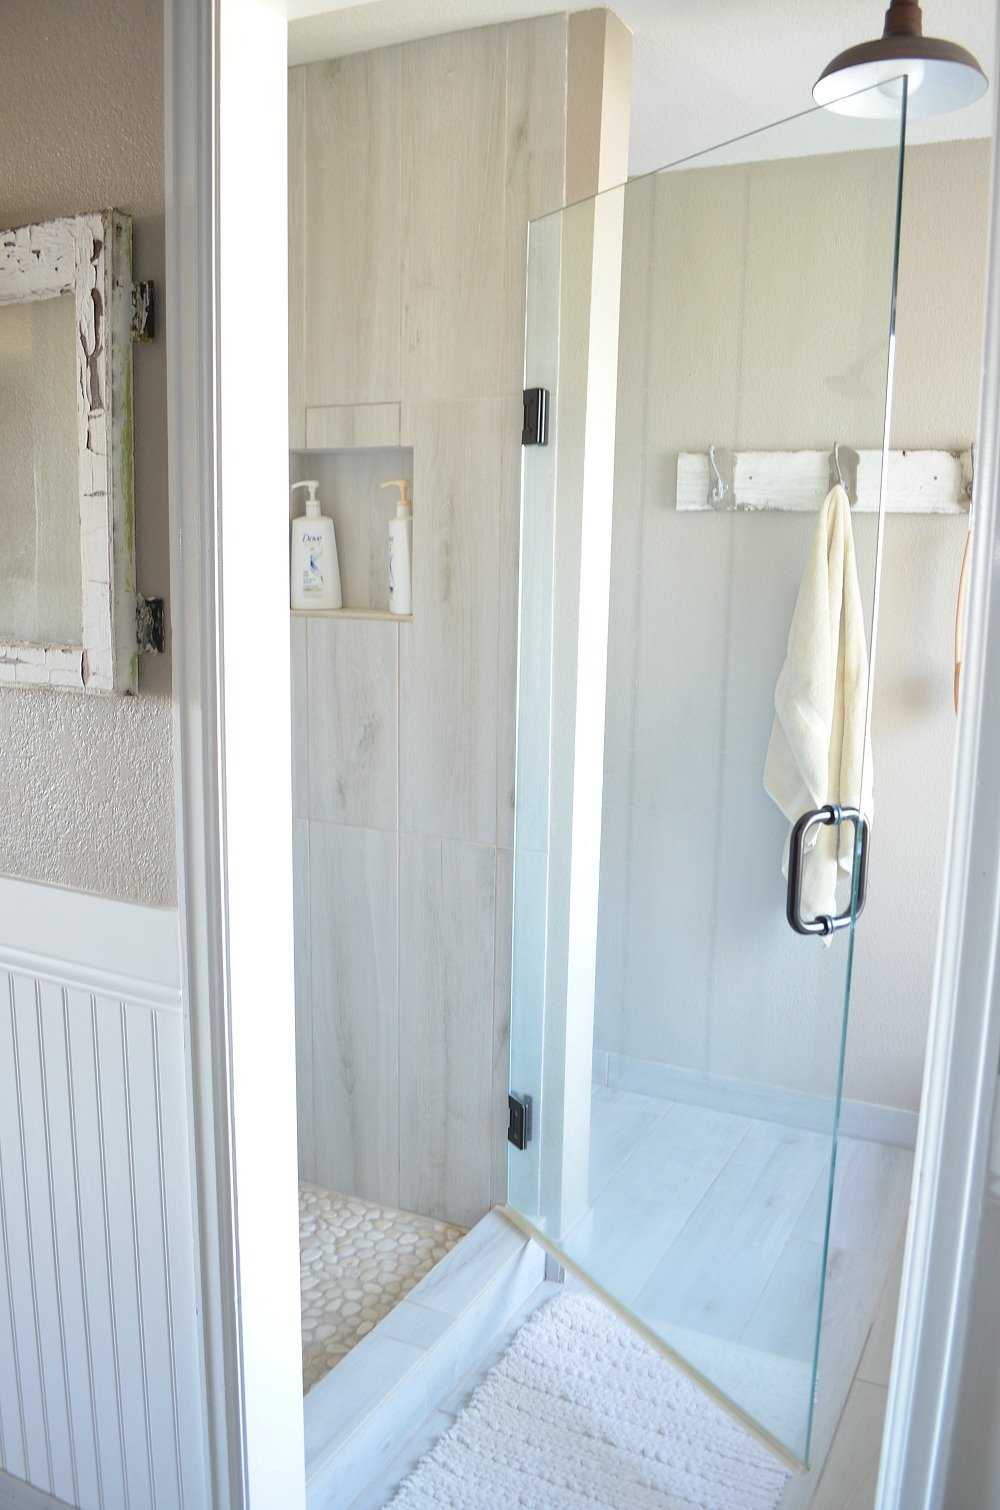 Modern farmhouse bathroom with euroglass shower door.